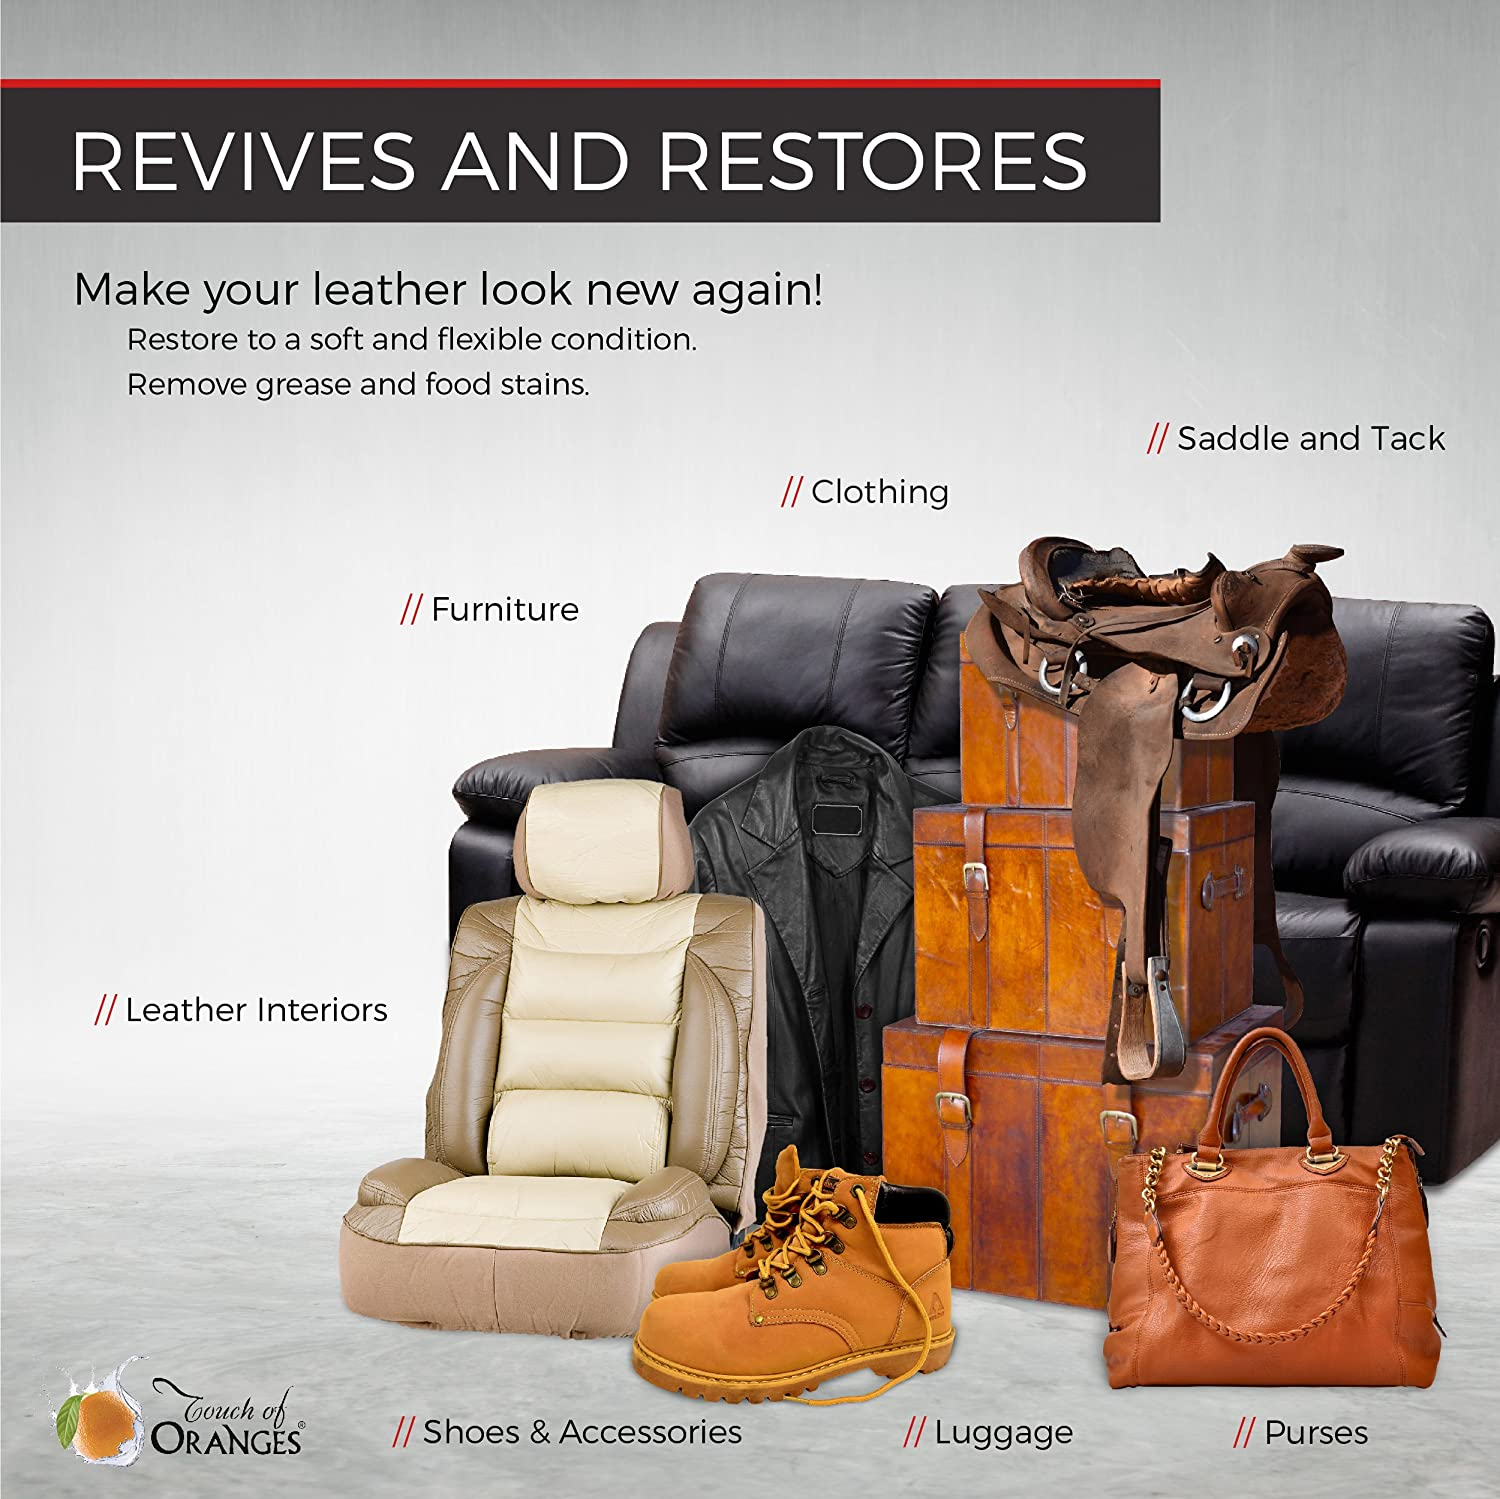 style restore inspiration fascinating this products couch files of faded sarasota picture care and interior to sofa stunning cleaner car cleaning how the fl seats furniture singapore leather